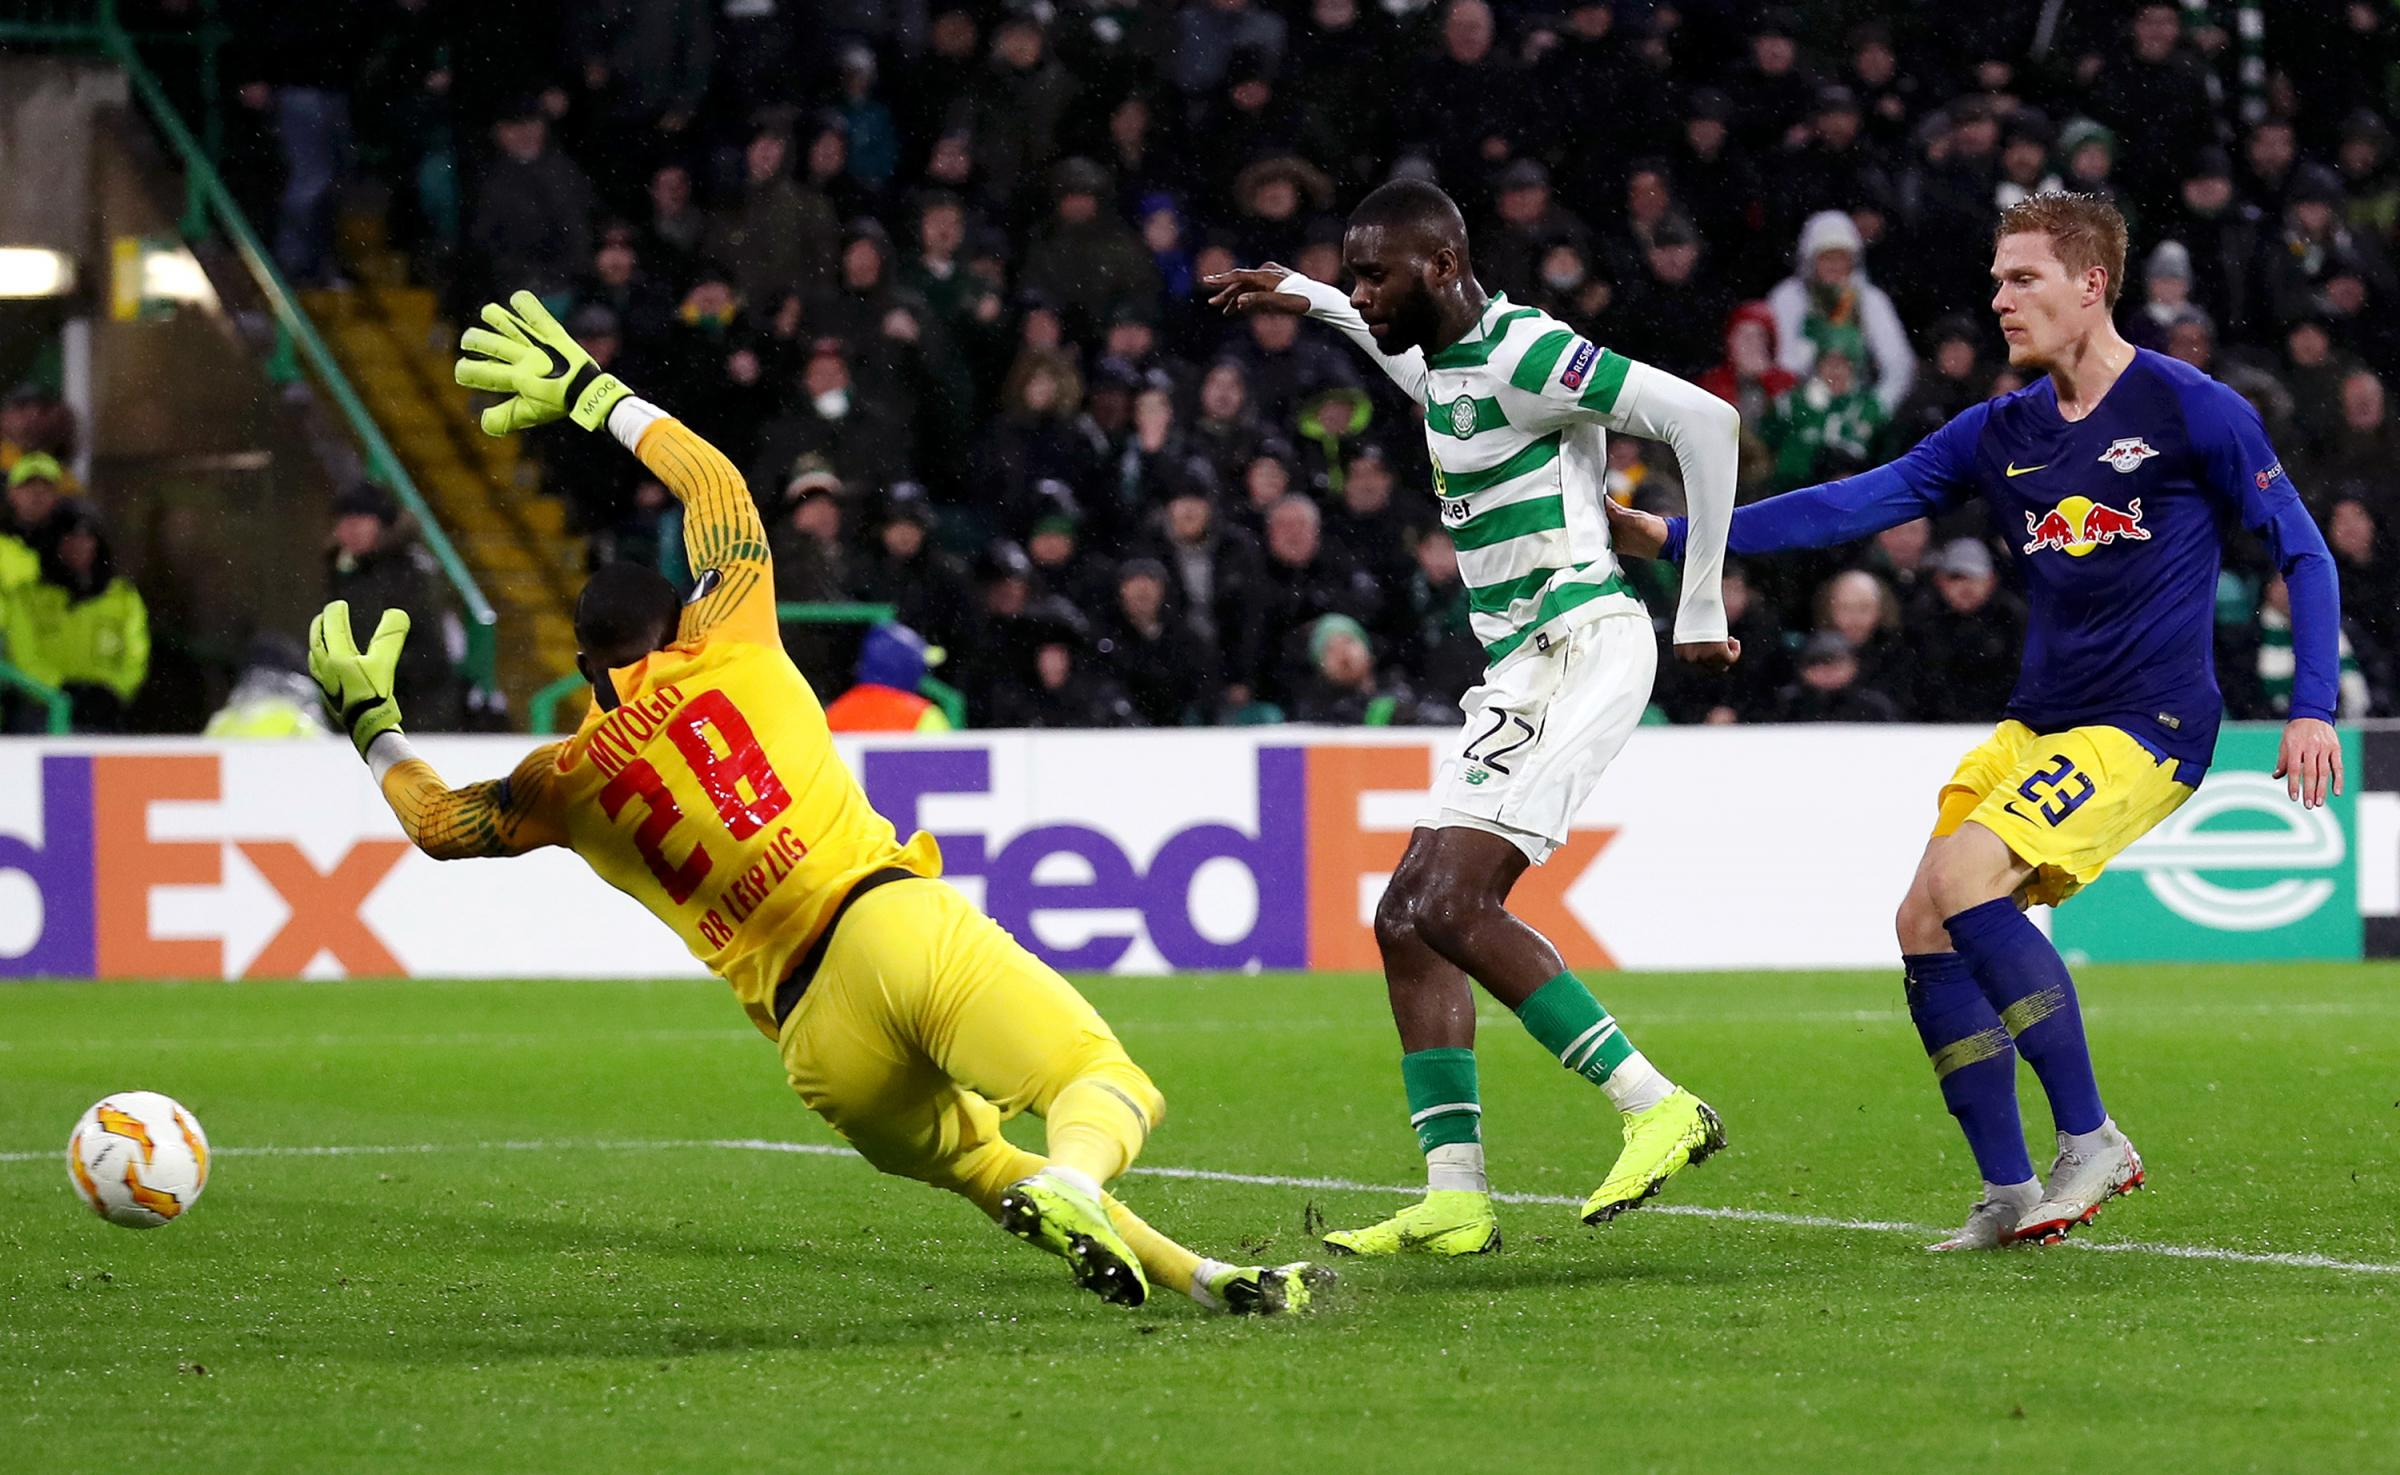 GLASGOW, SCOTLAND - NOVEMBER 08:  Odsonne Edouard of Celtic (C) scores his team's second goal past Yvon Mvogo of RB Leipzig  during the UEFA Europa League Group B match between Celtic and RB Leipzig at Celtic Park on November 8, 2018 in Glasgow, Unite